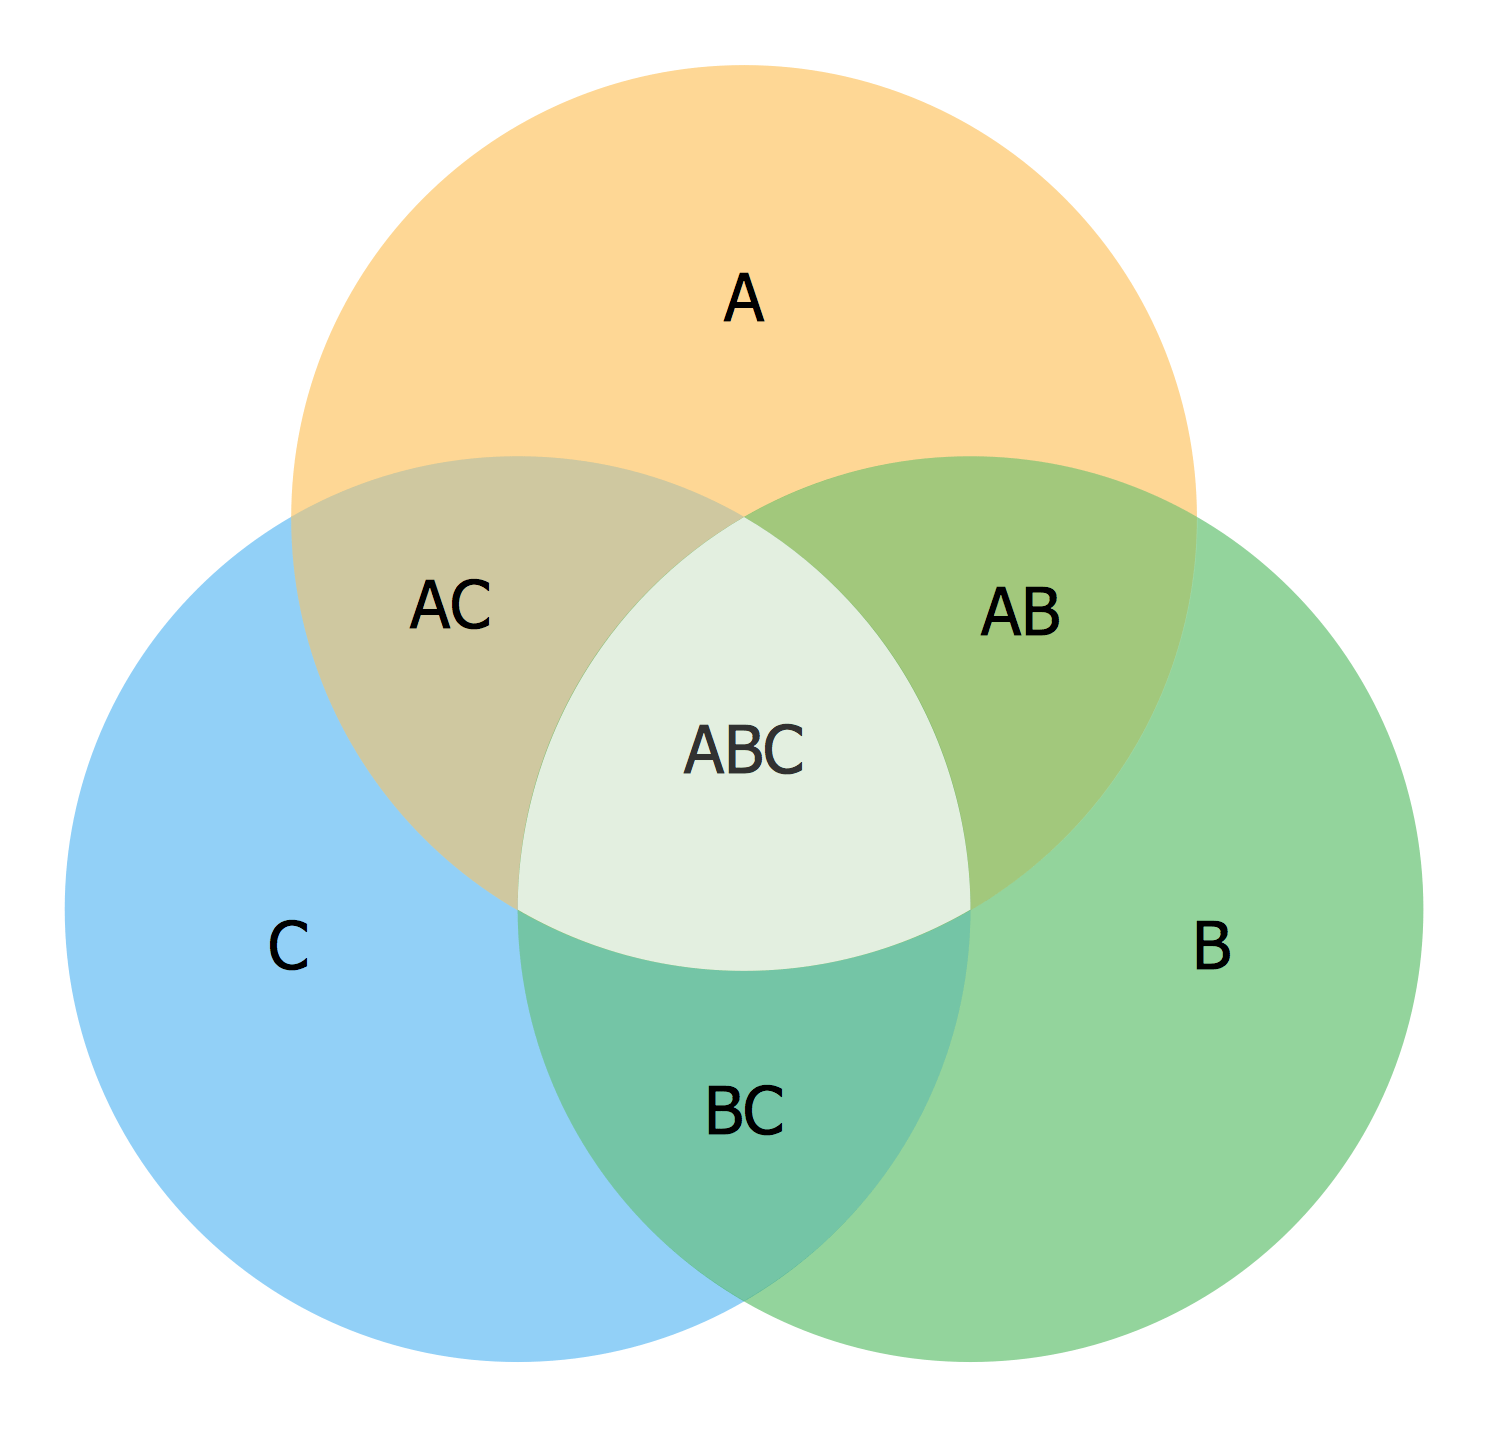 how to draw a venn diagram with 4 sets